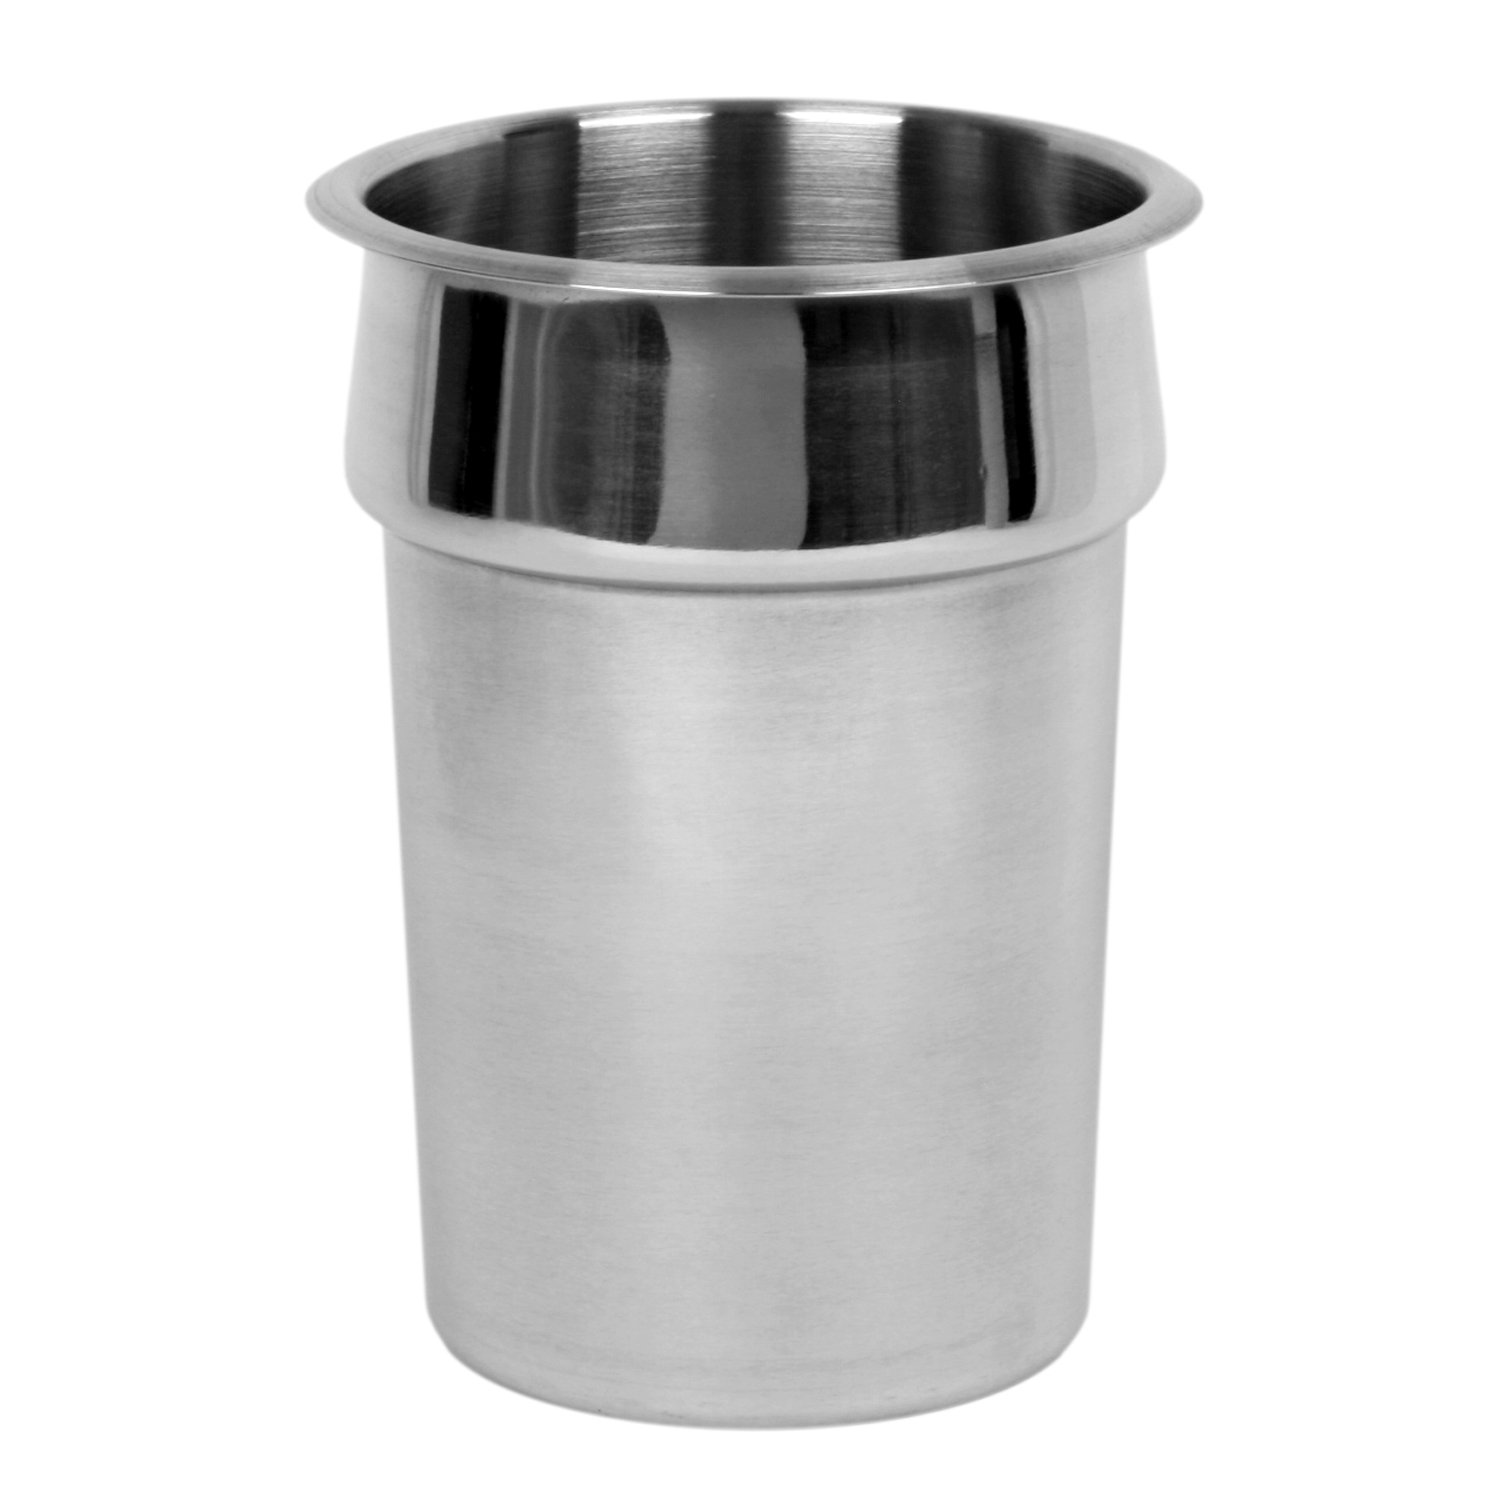 Excellante 849851007864 Stainless Steel Funnel with Removable Strainer 6 6